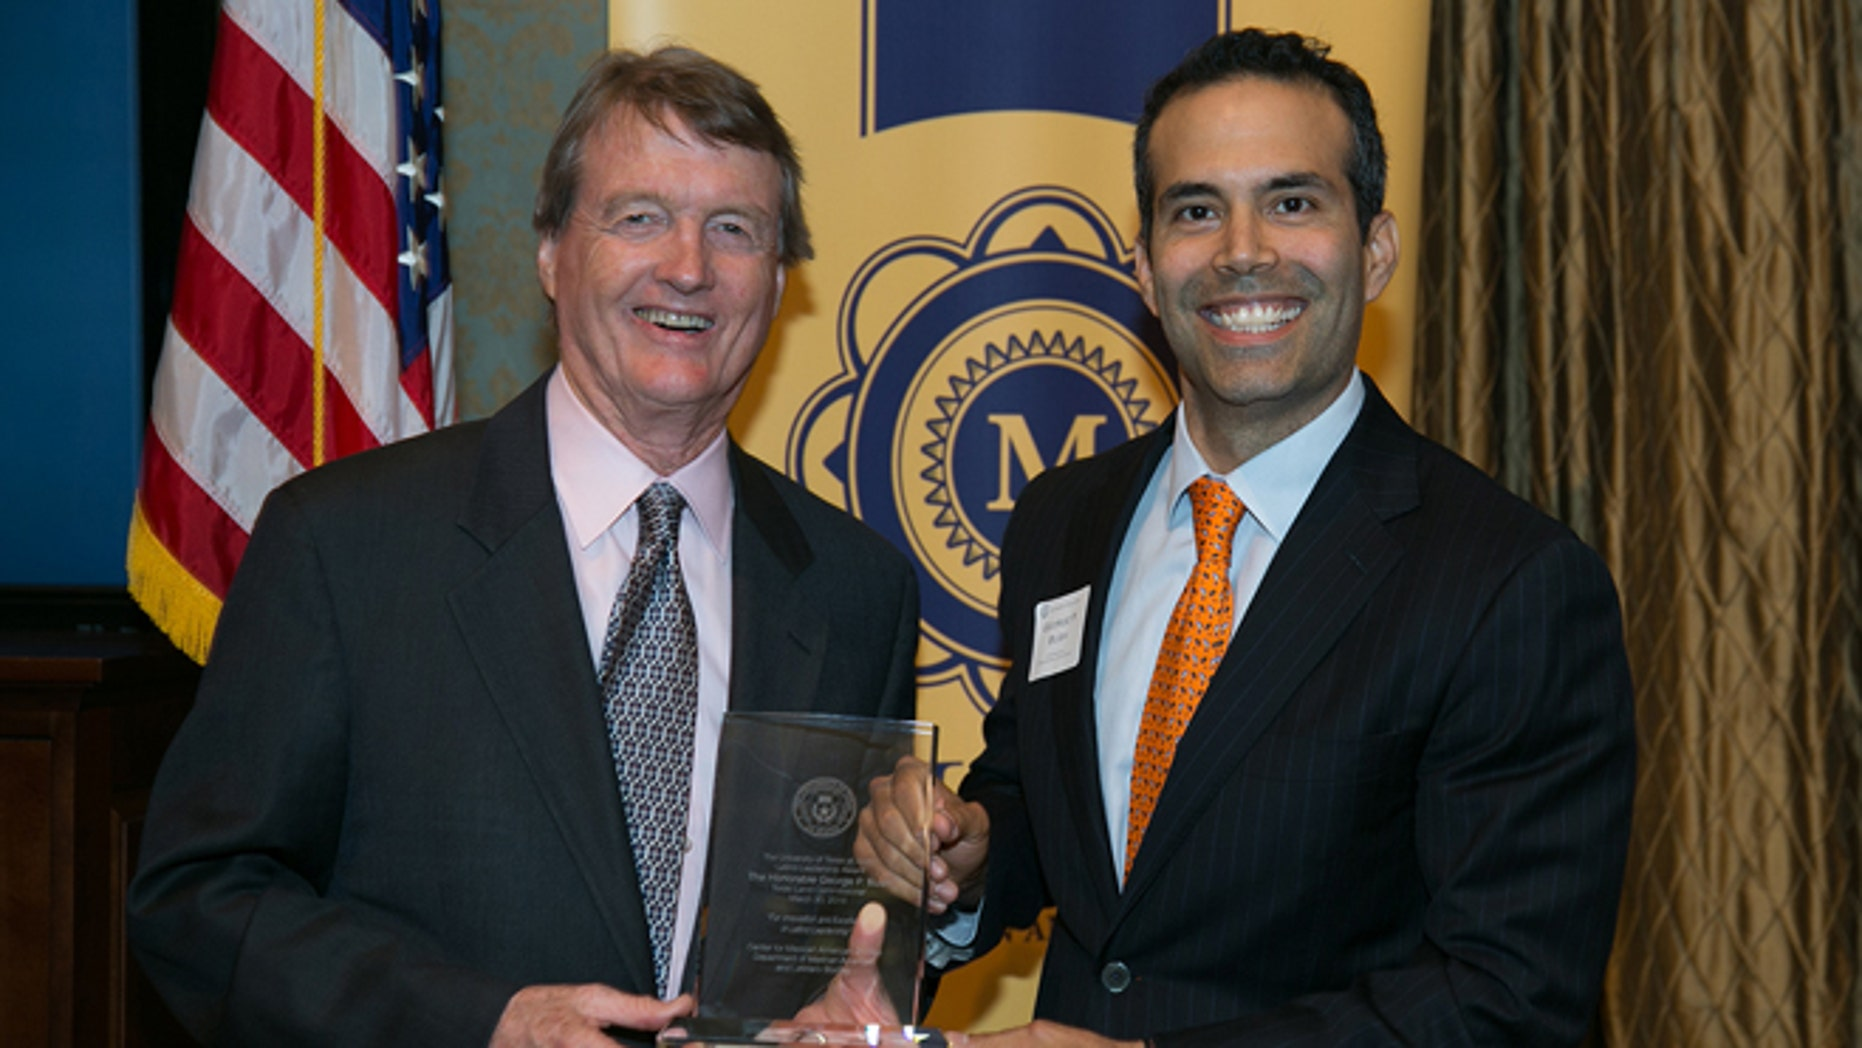 UT Austin President Bill Powers and Texas Land Commissioner George P. Bush at a reception on campus.